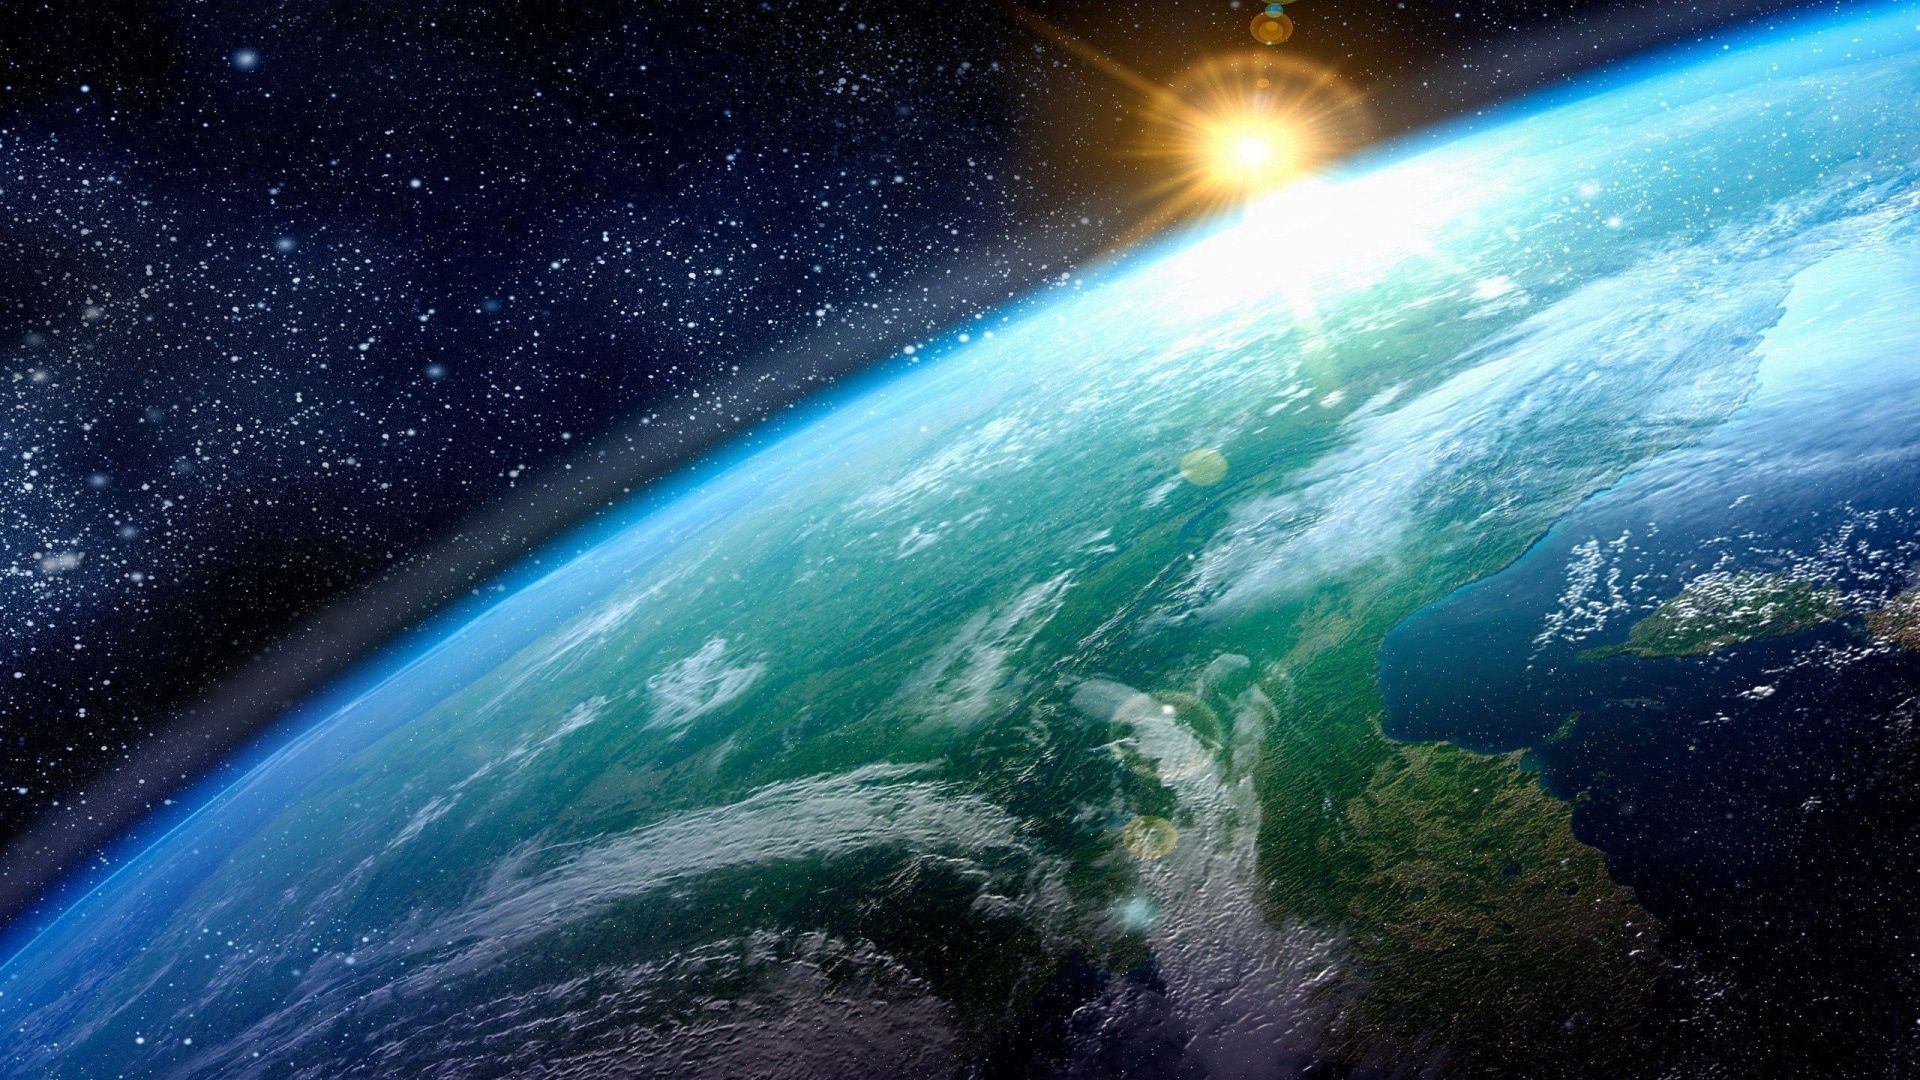 109213 download wallpaper Universe, Sun, Stars, Surface, Land, Earth, Planet screensavers and pictures for free